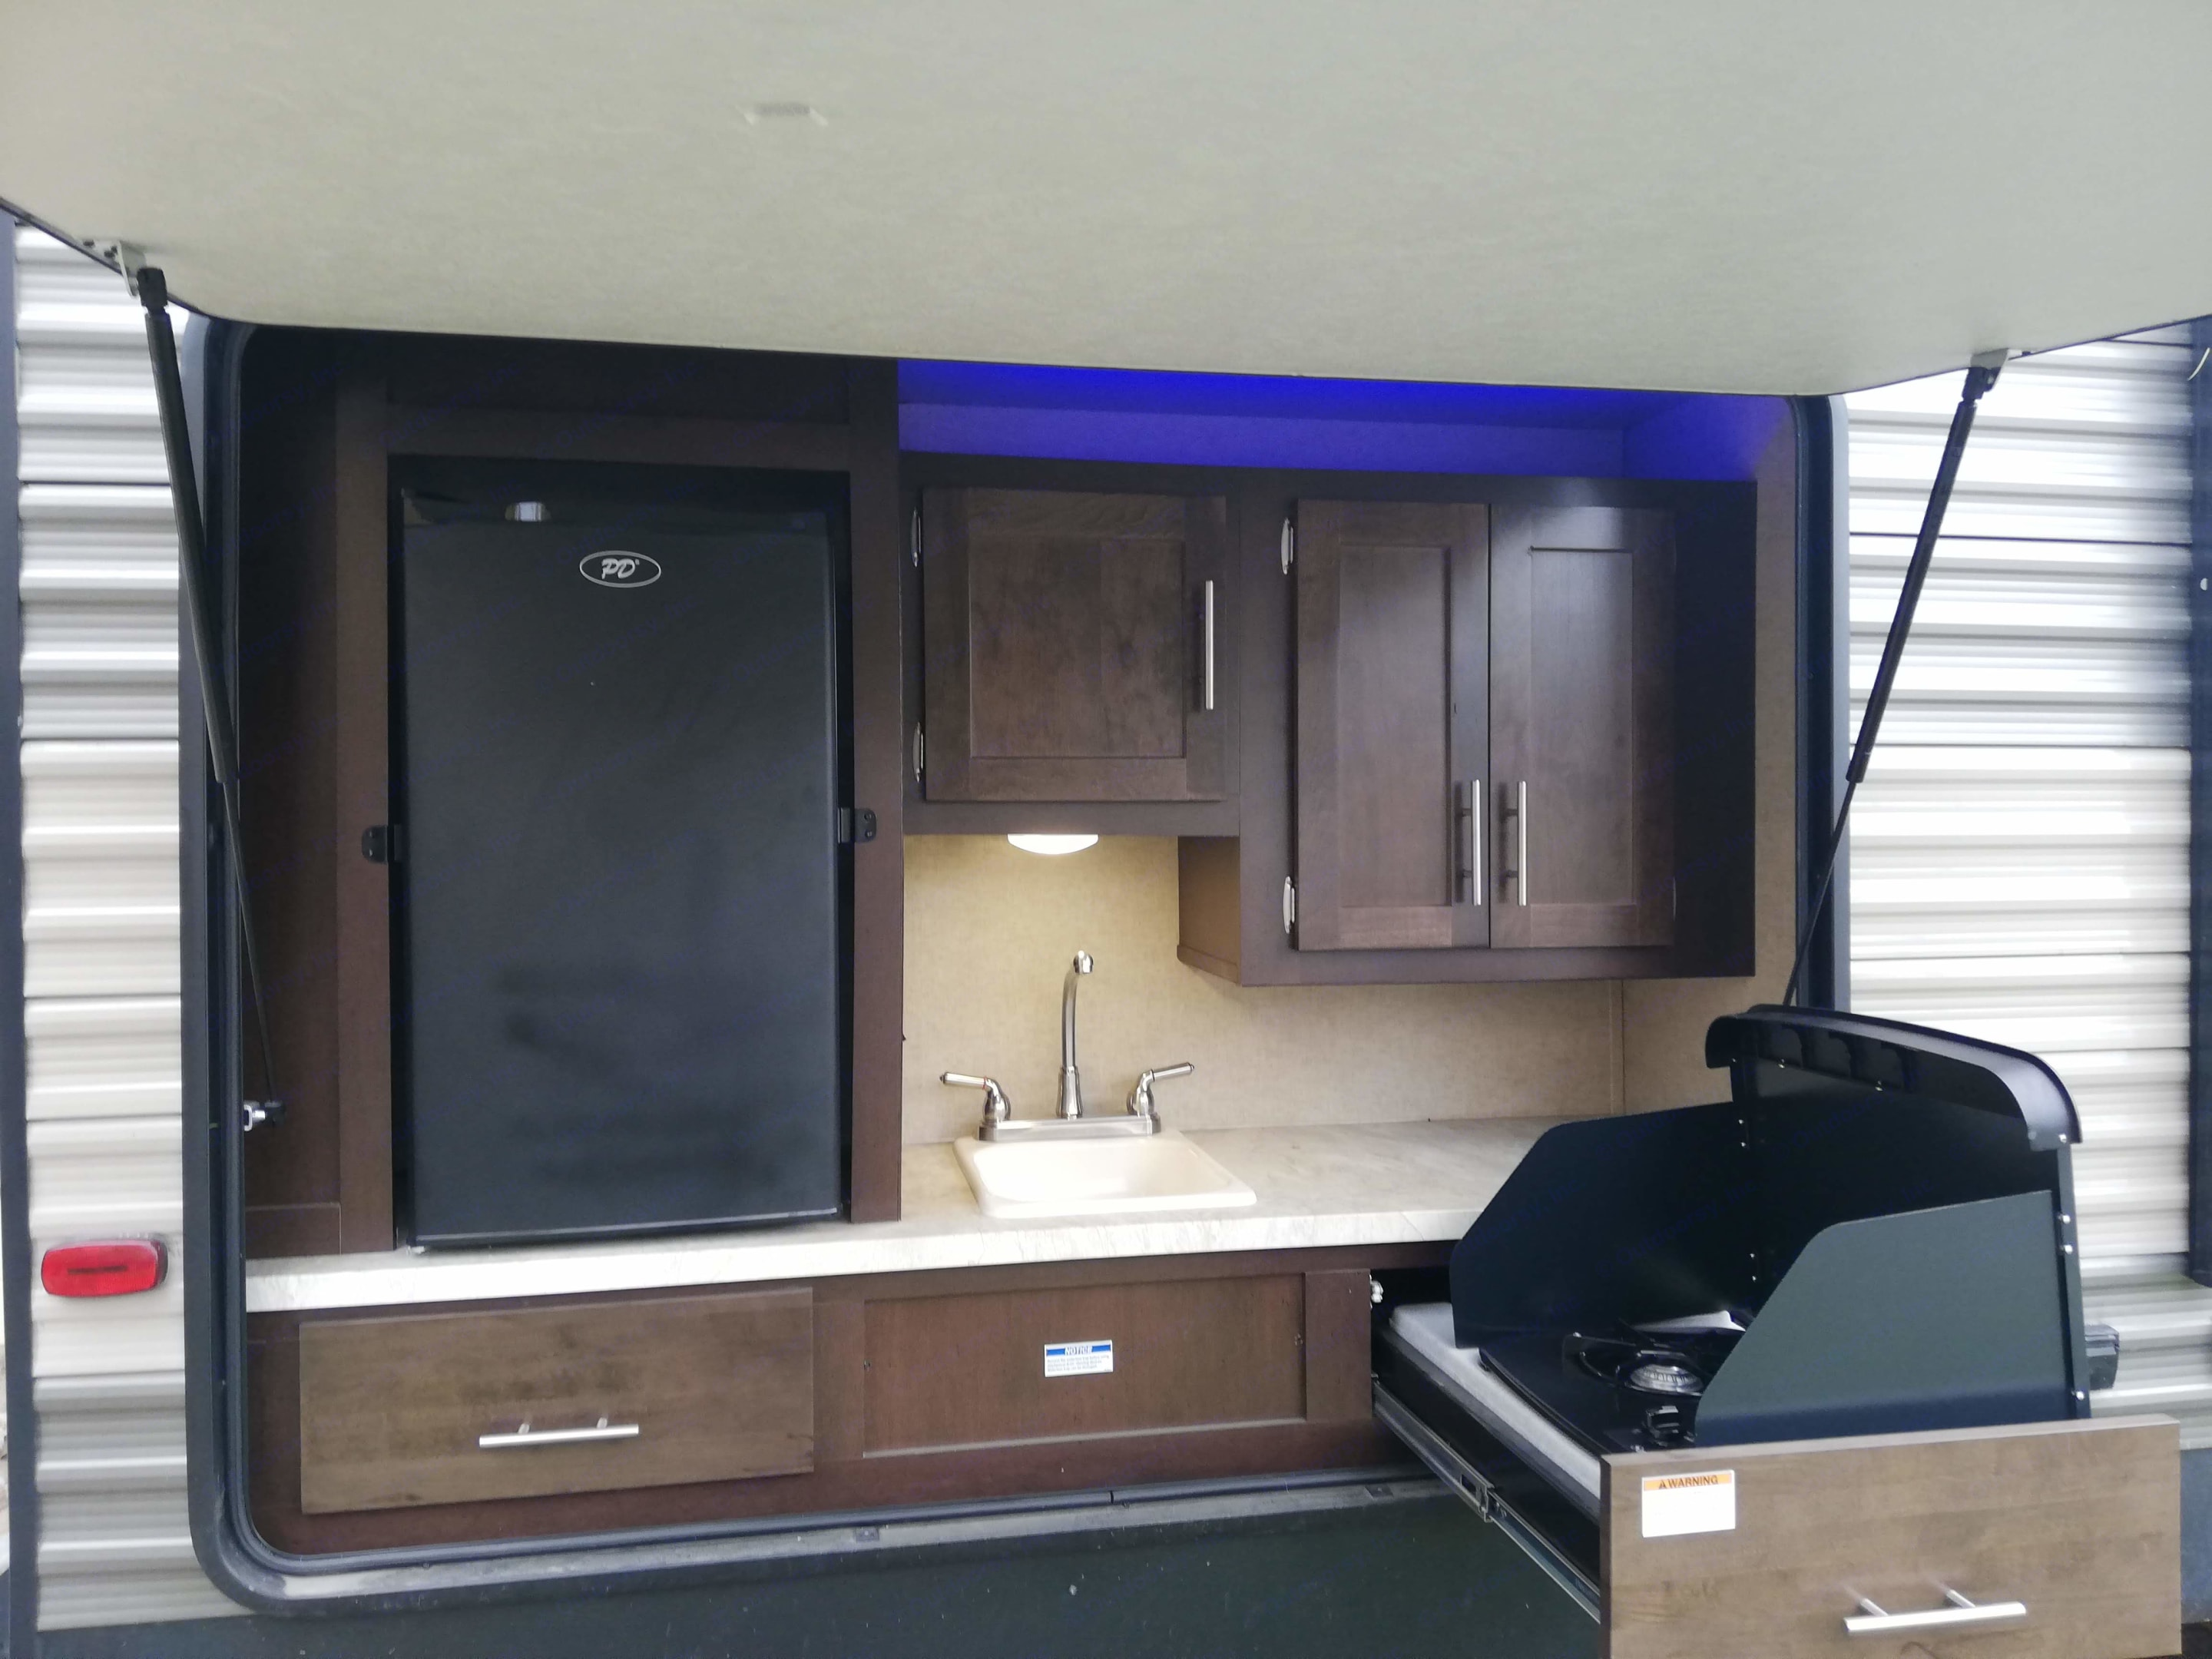 Outdoor kitchen with fridge, two burner propane stove, sink and storage!. Forest River Cherokee 2017